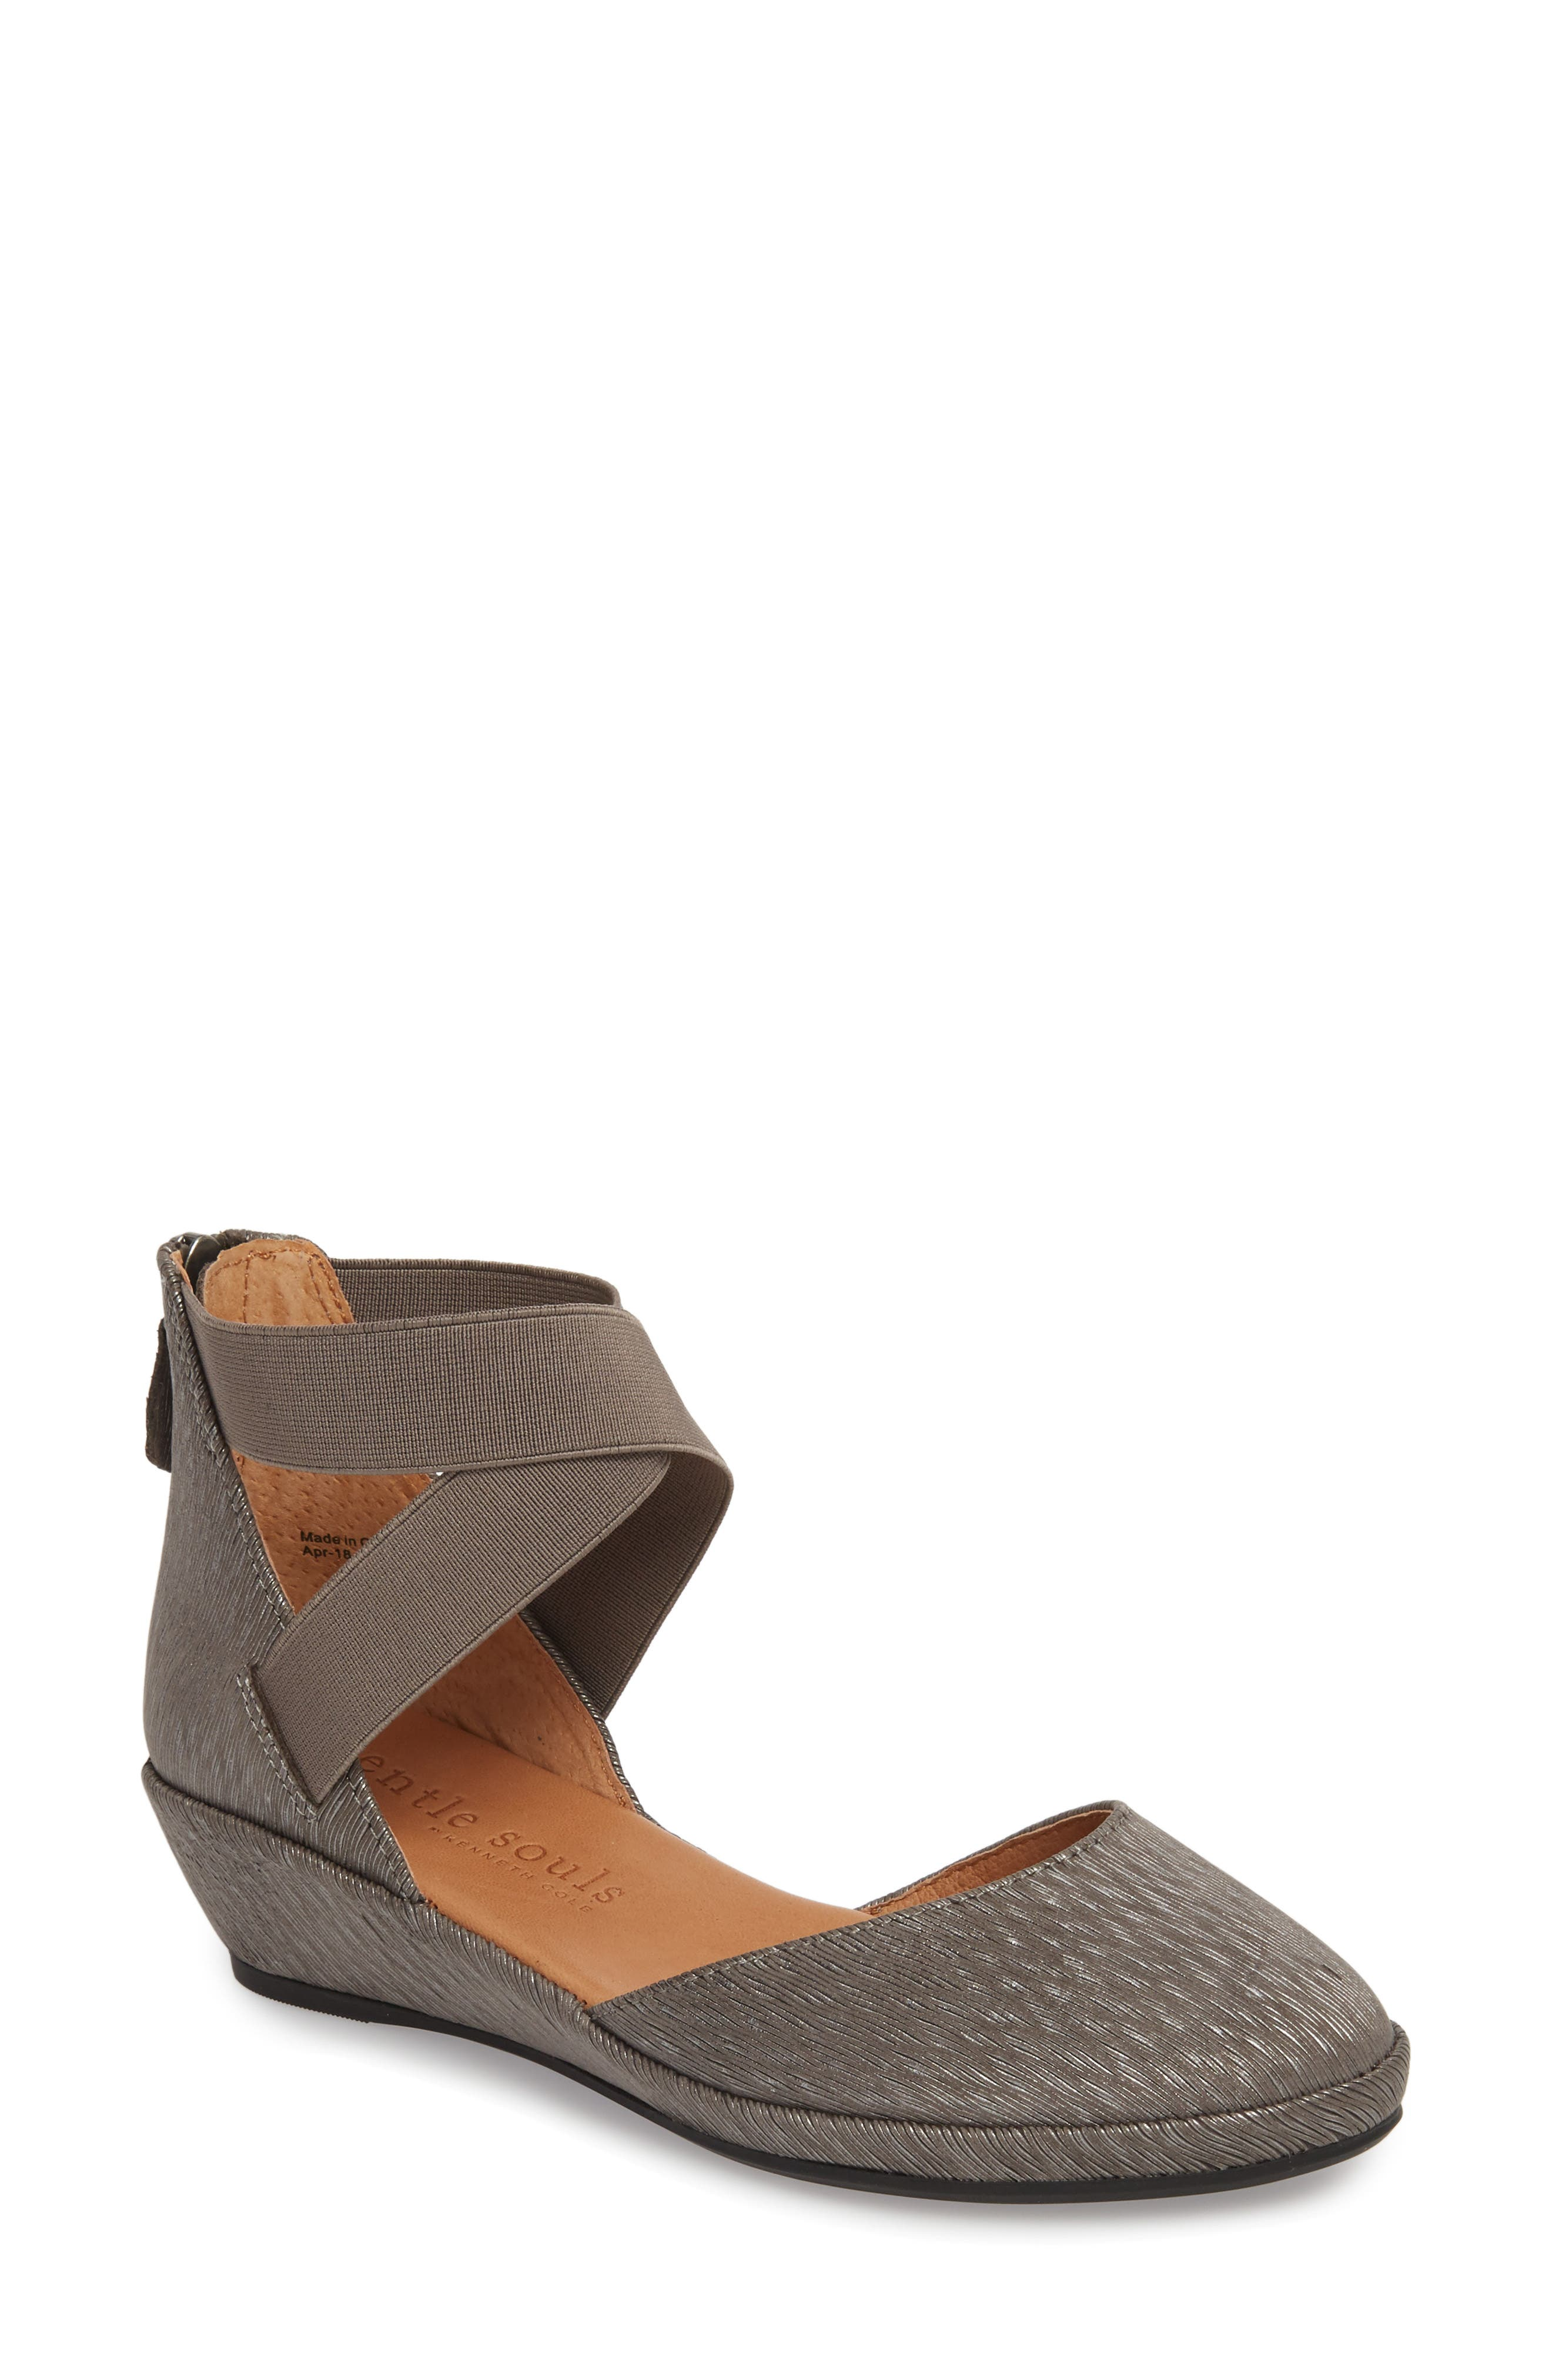 by Kenneth Cole 'Noa' Elastic Strap d'Orsay Sandal,                         Main,                         color, Ash Embossed Leather